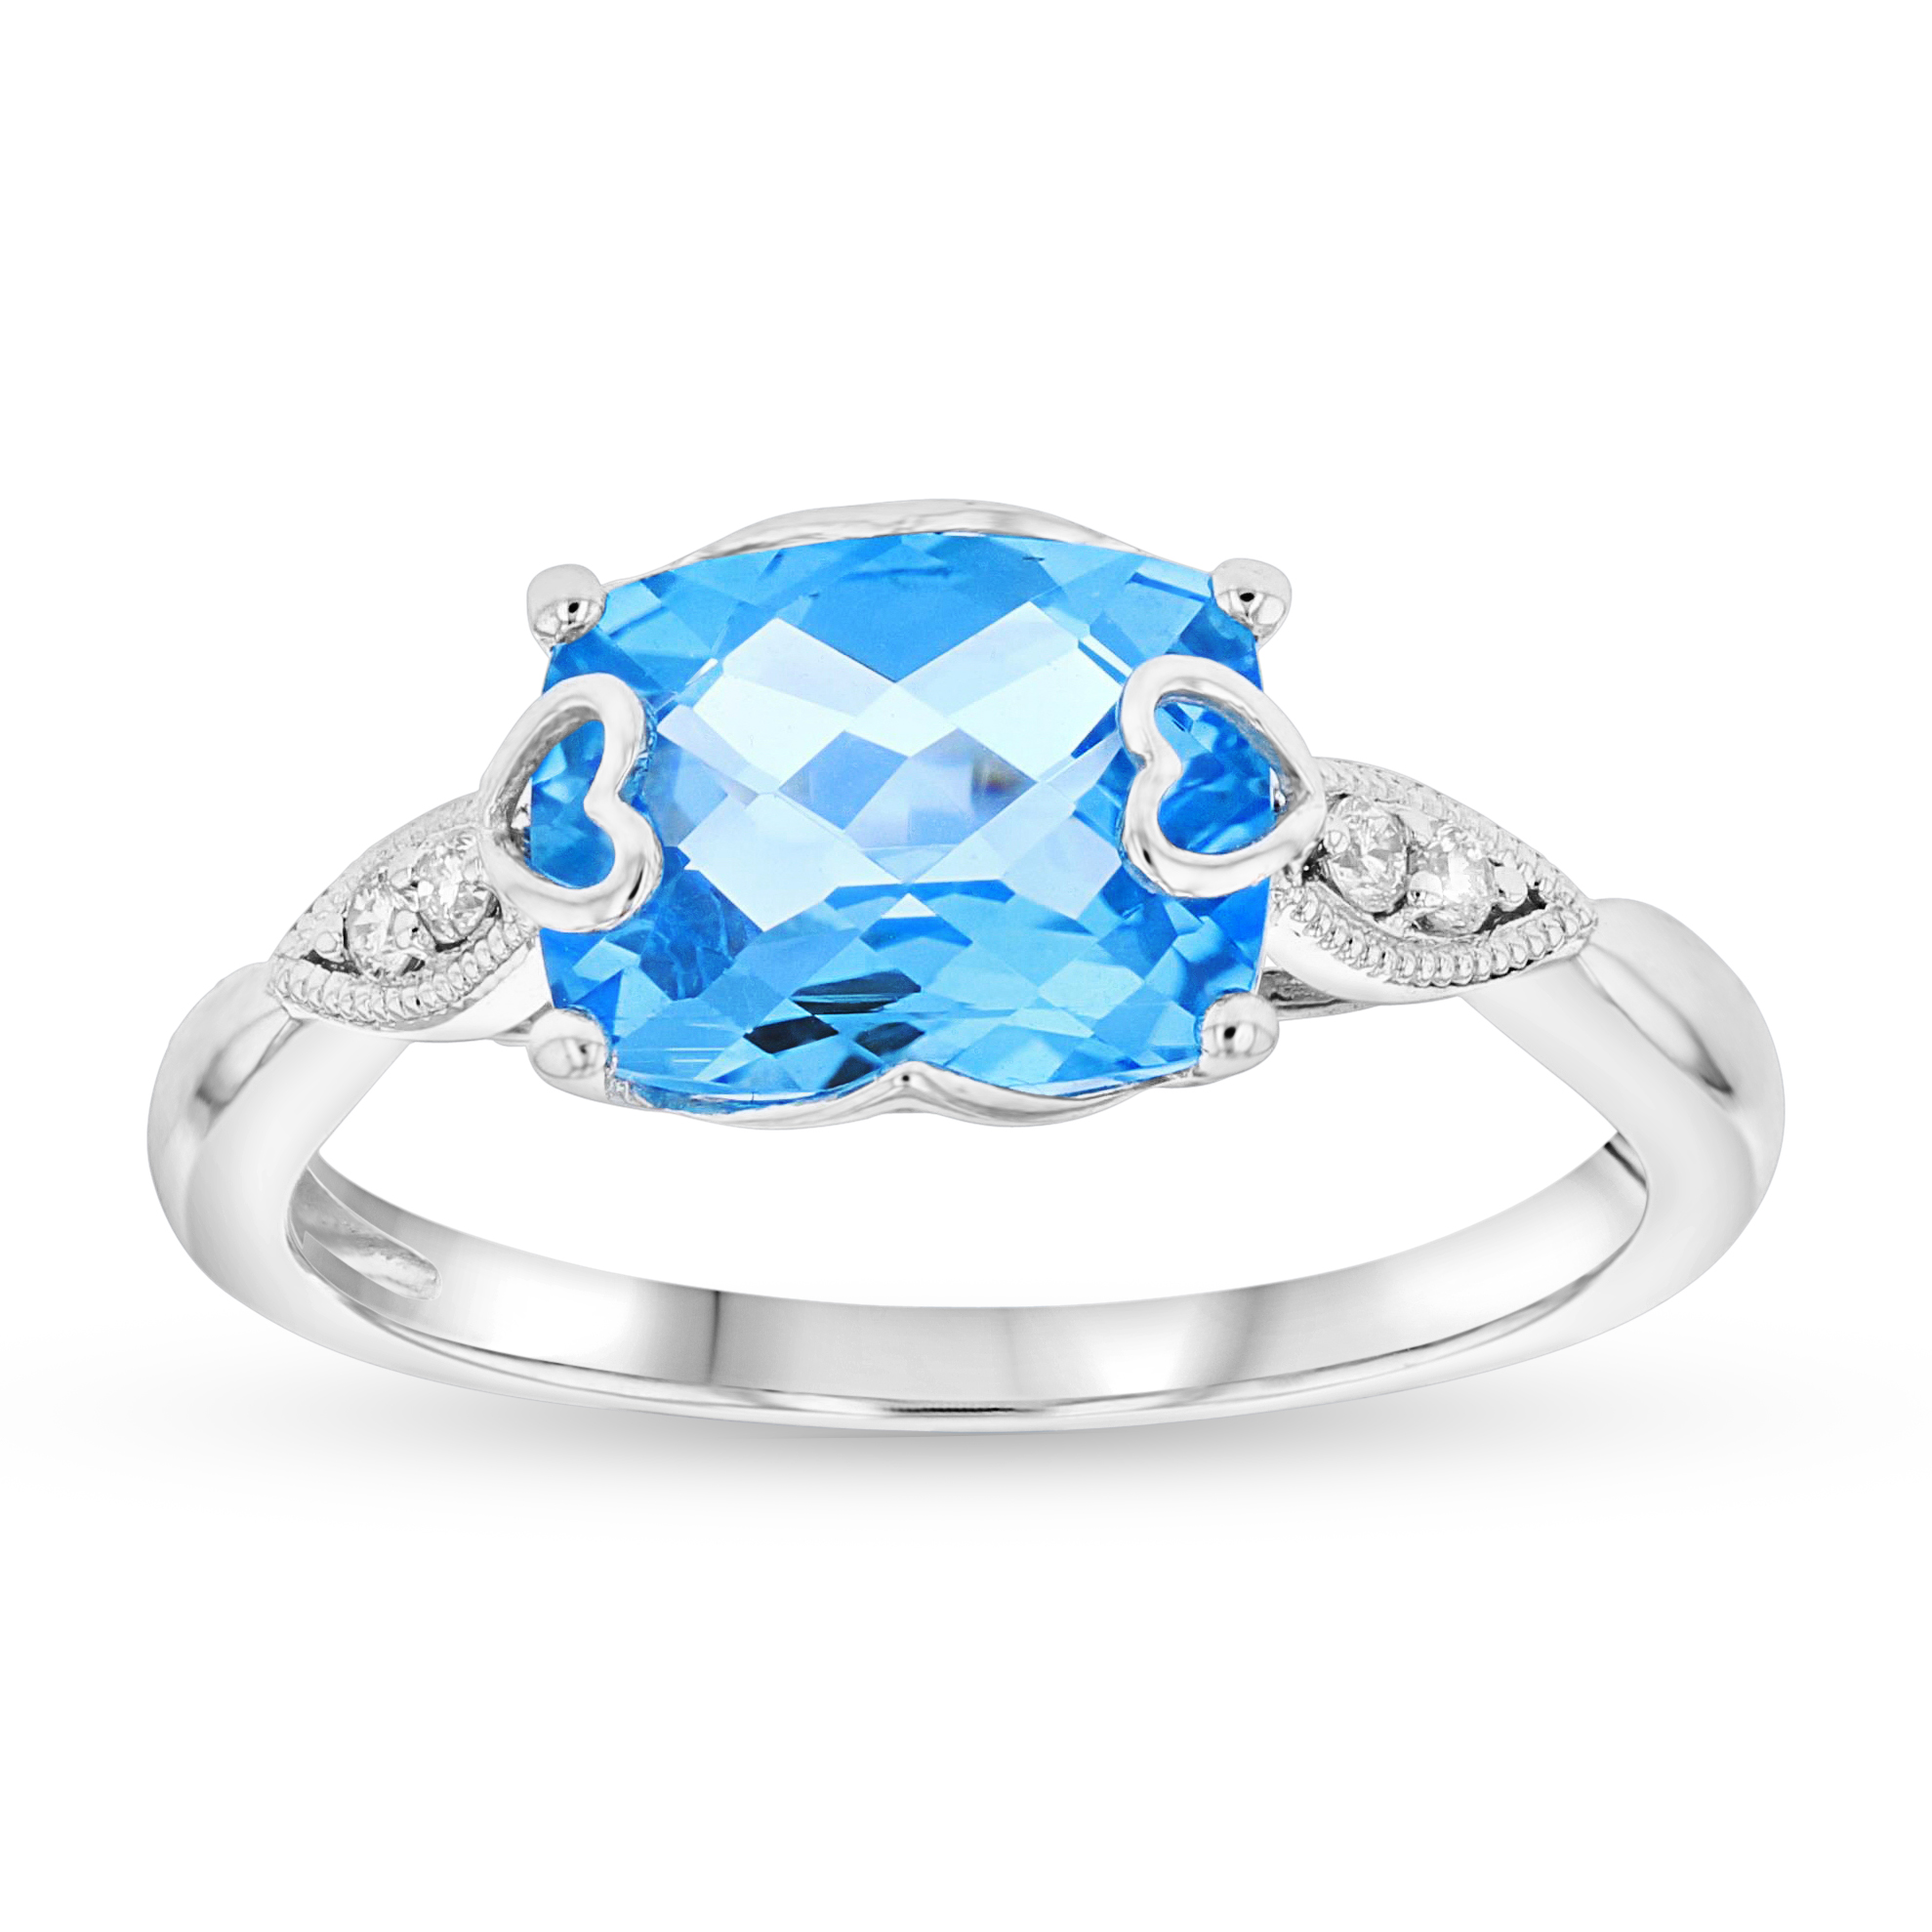 View 2.46ctw Blue Topaz and Diamond Ring in 14k White Gold